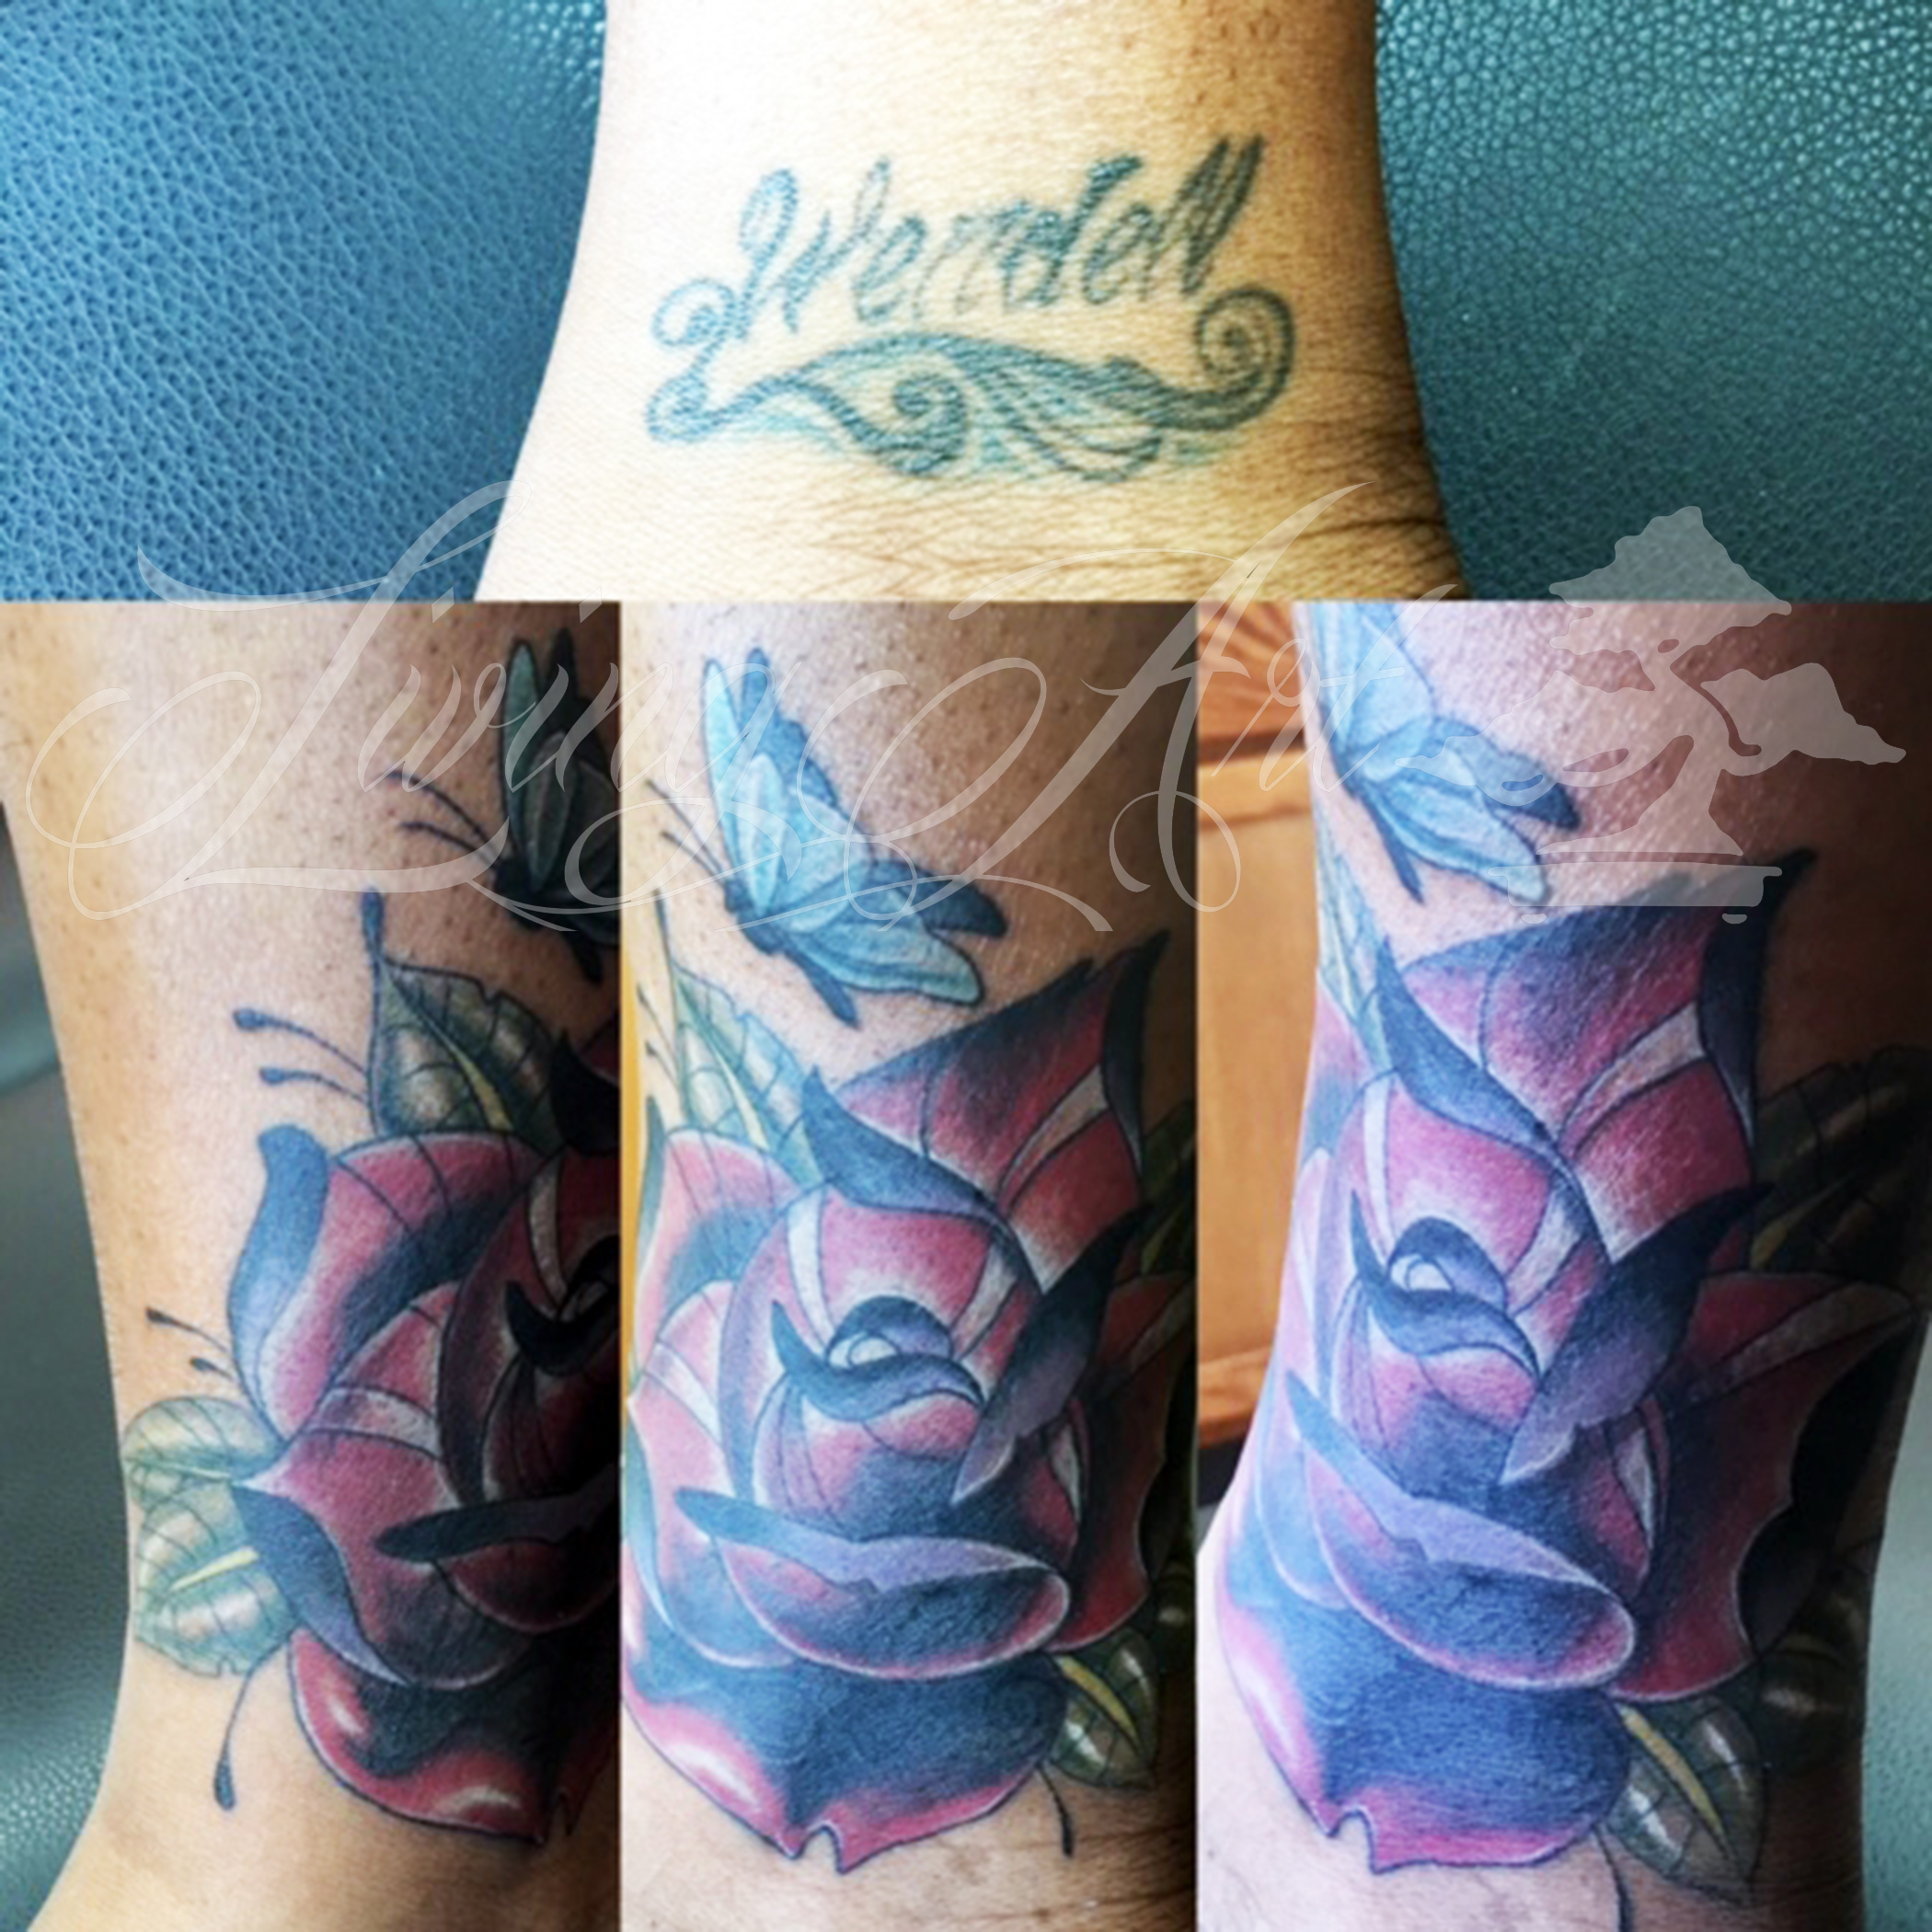 chris owen tattoo_cover up tattoo_neo traditional rose tattoo.jpg